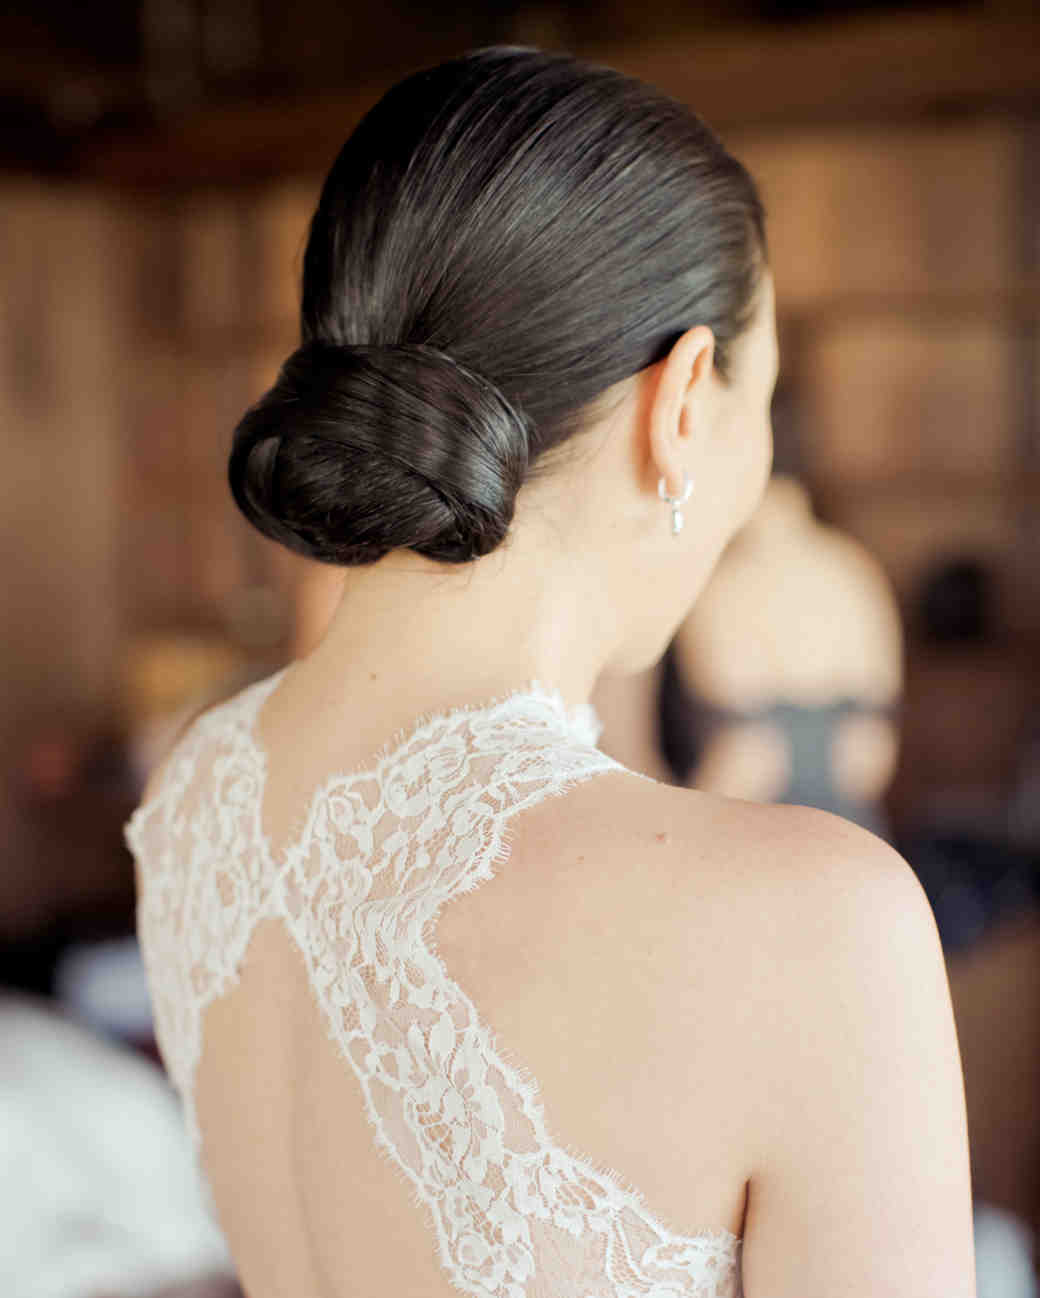 Wedding Hairstyle For Bride: Modern Wedding Hairstyles For The Cool, Contemporary Bride